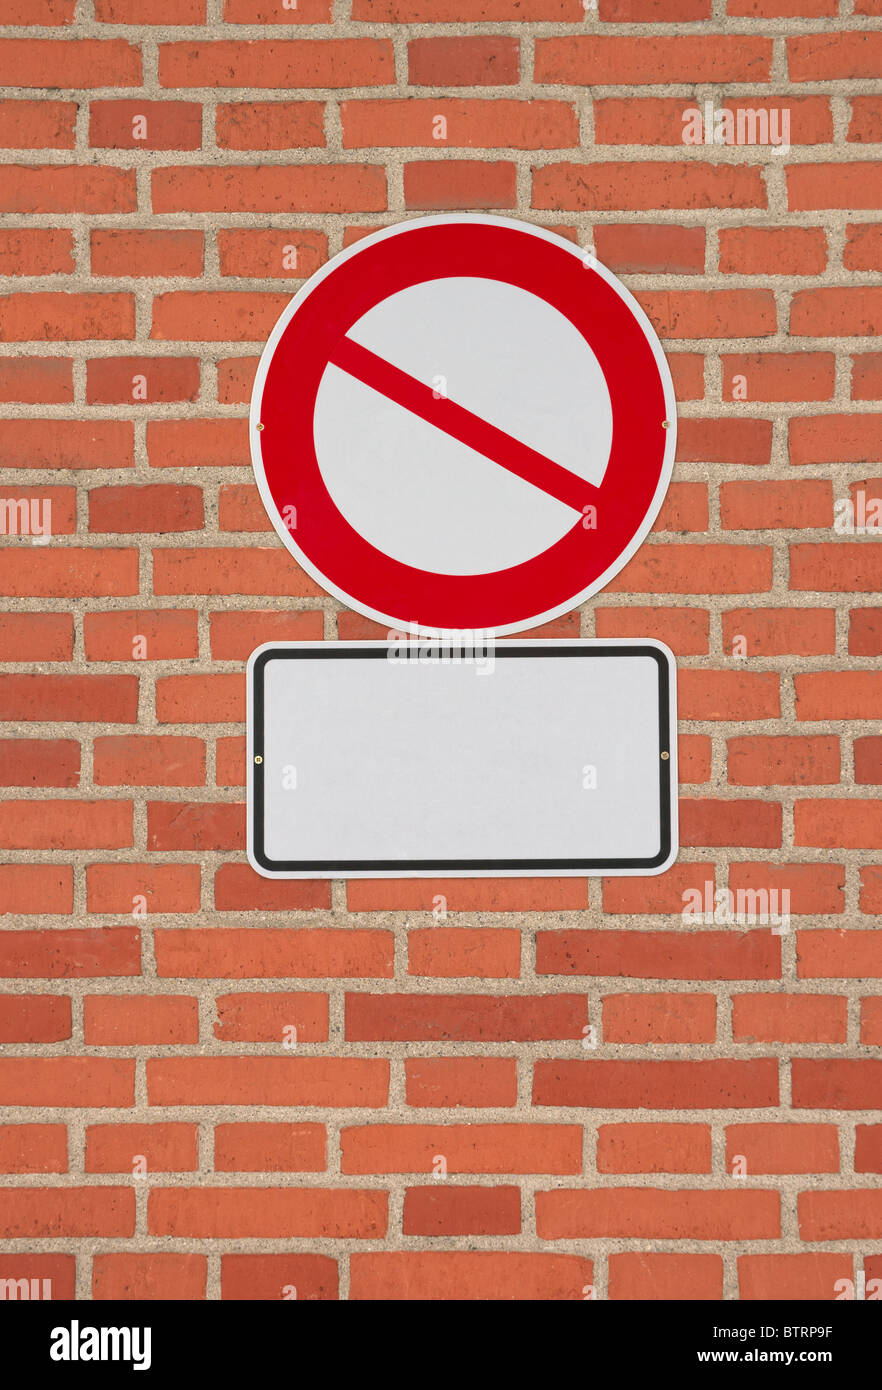 Prohibition sign with blank letter plate on brick wall. Template to put any icon and text on. - Stock Image